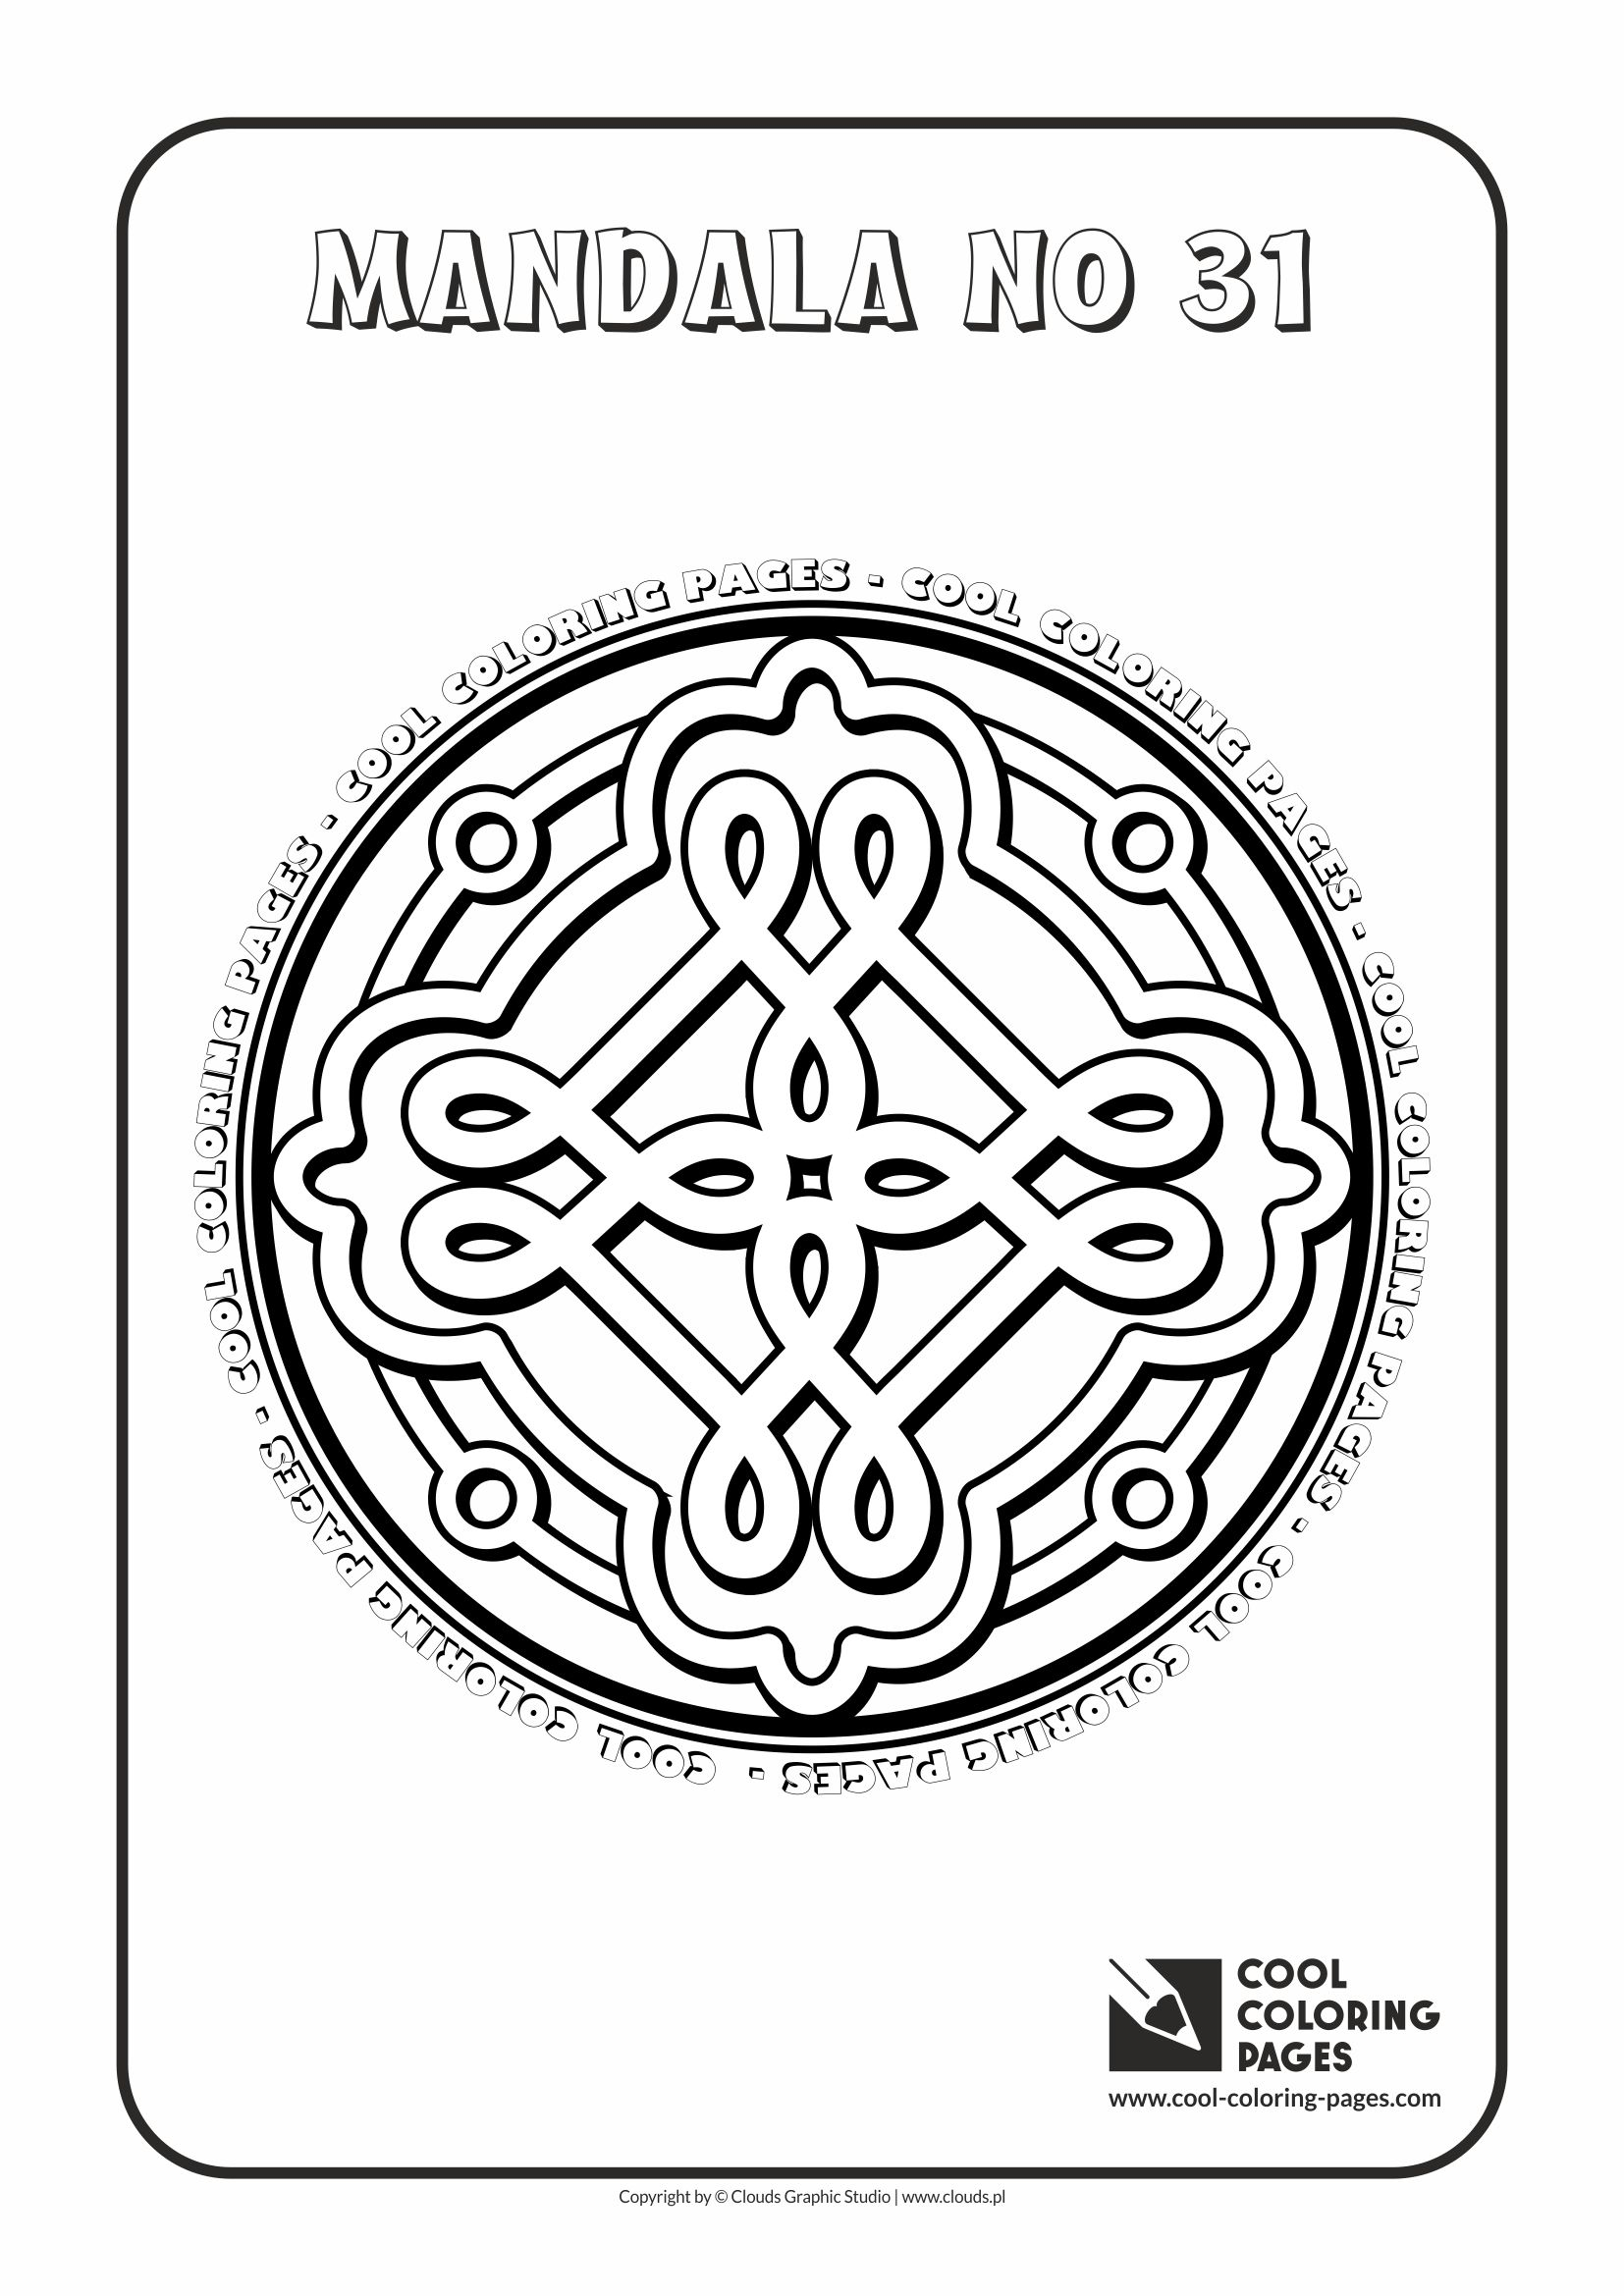 Cool Coloring Pages - Mandalas / Mandala no 31